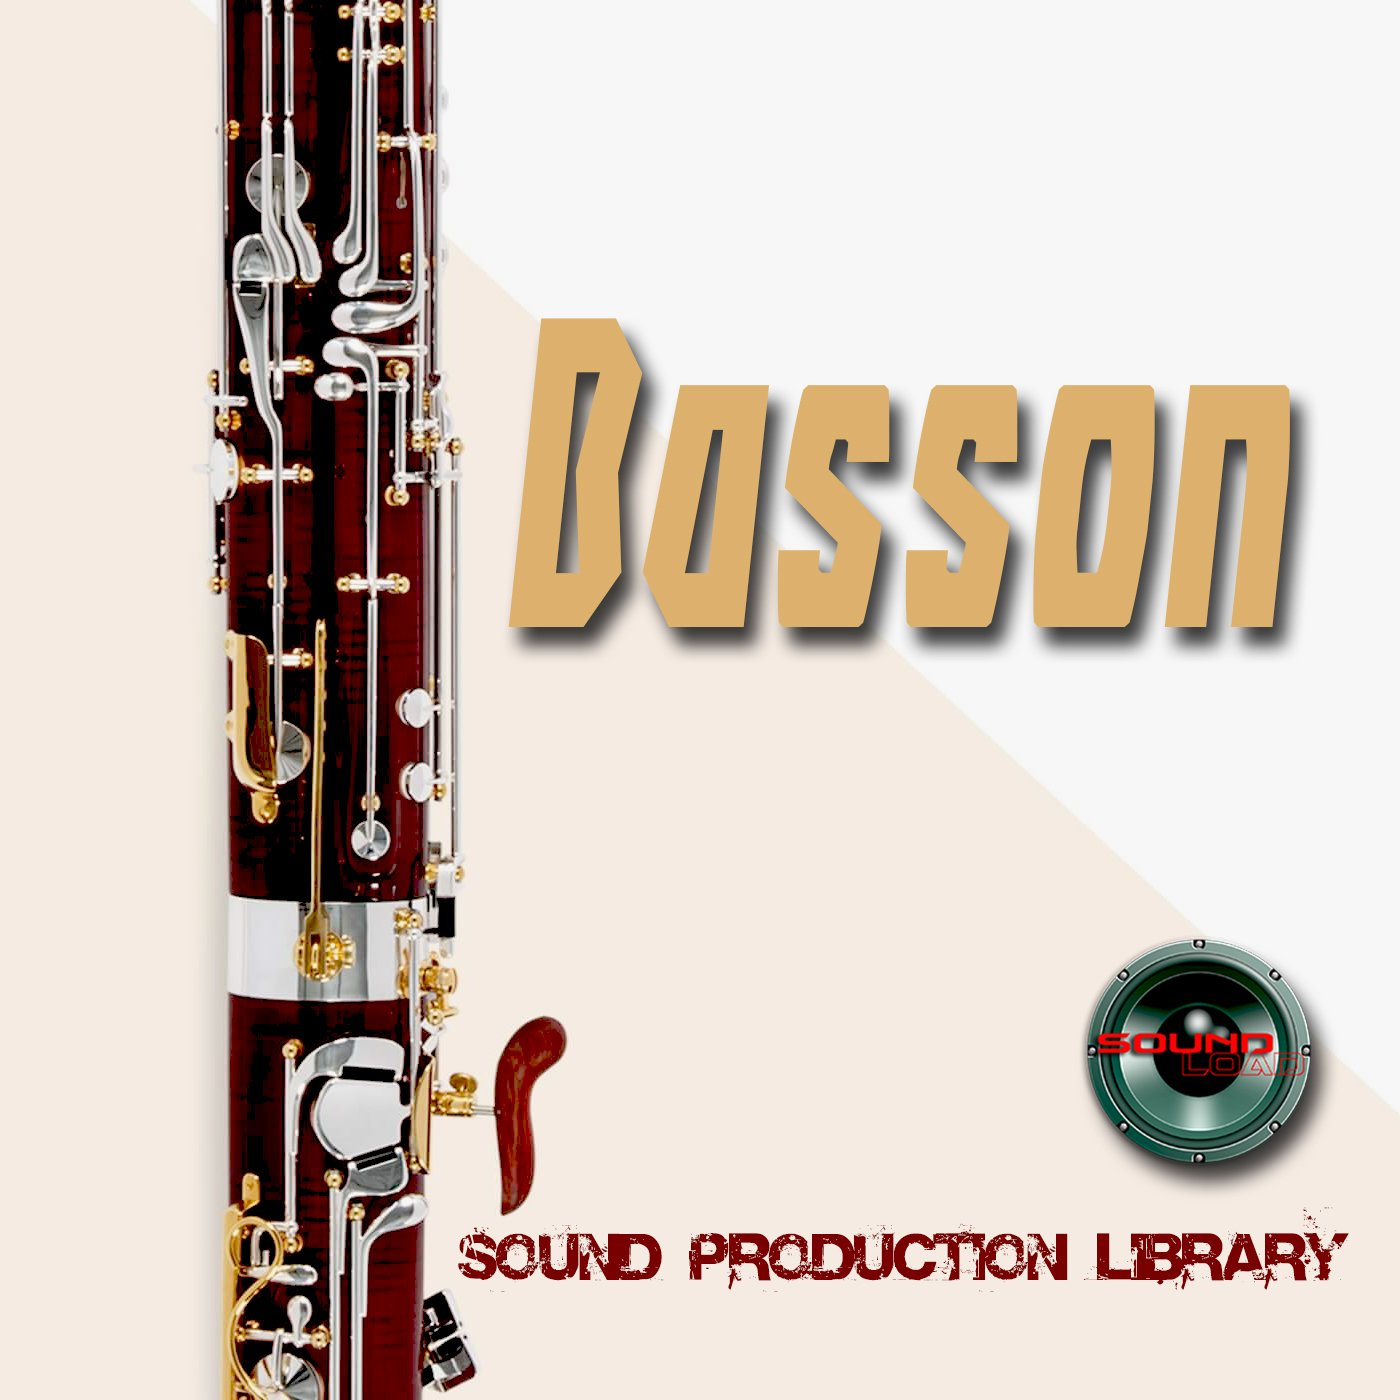 Basson Real - Large Unique 24bit WAVE/KONTAKT Multi-Layer Studio Samples Production Library on DVD or download